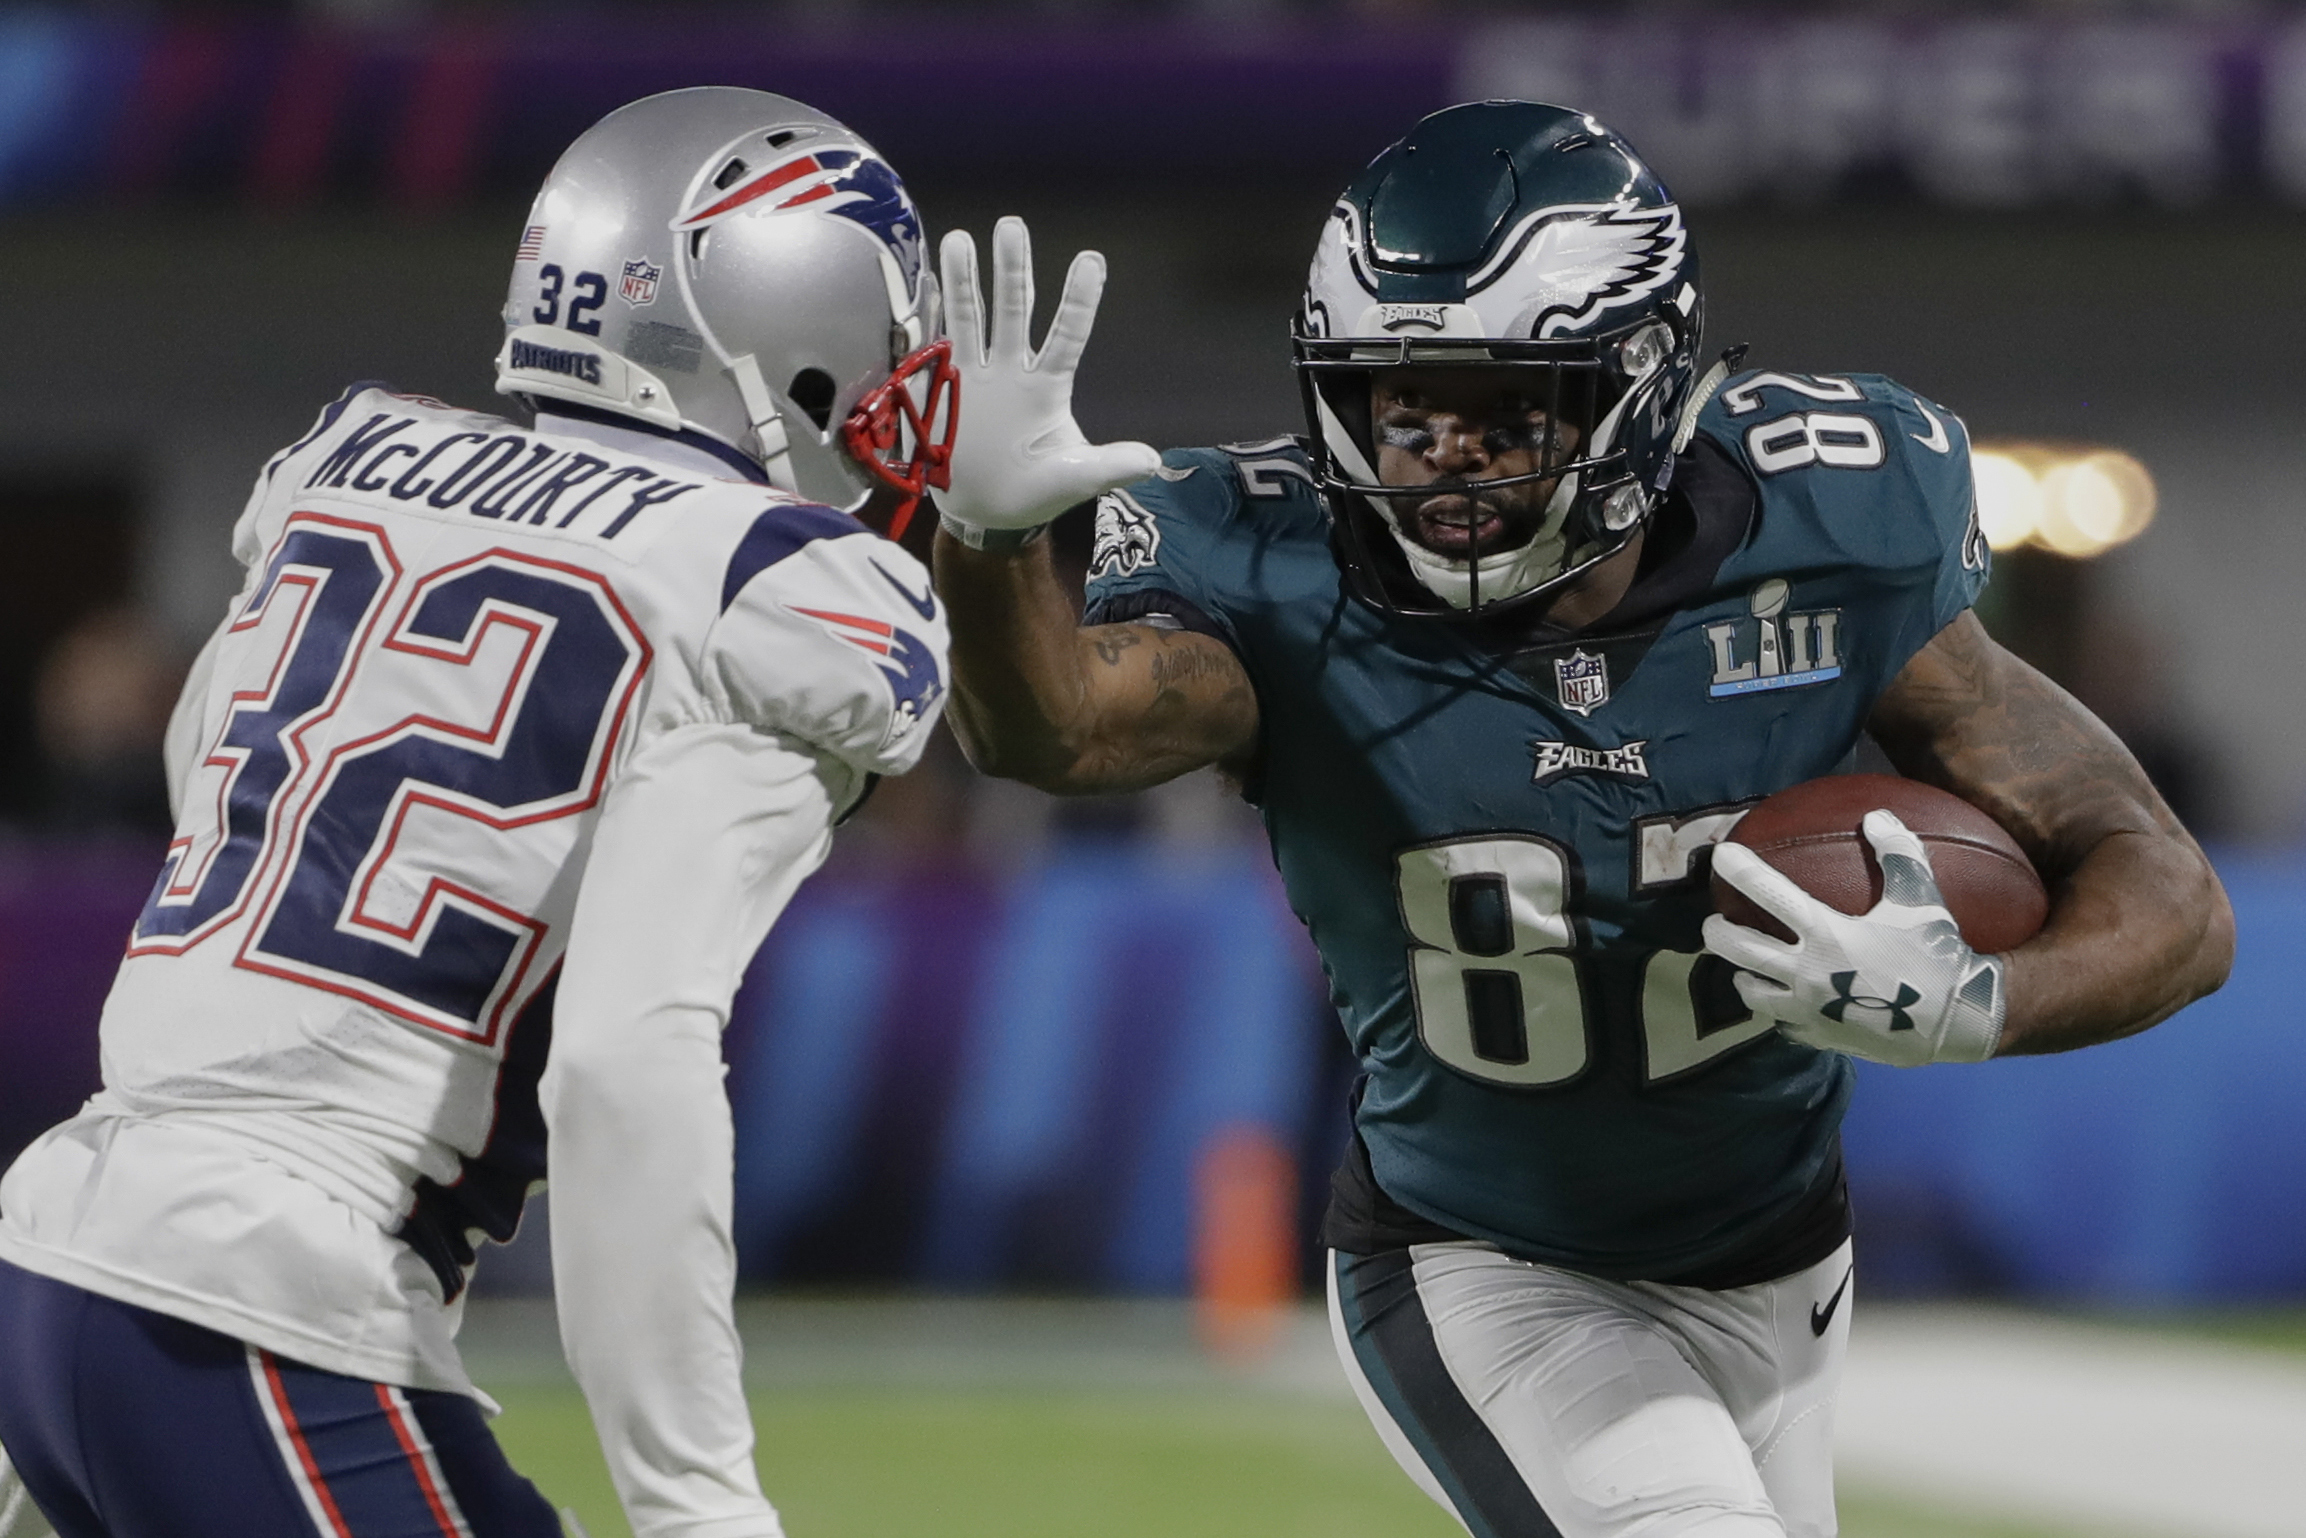 "<div class=""meta image-caption""><div class=""origin-logo origin-image ap""><span>AP</span></div><span class=""caption-text"">Philadelphia Eagles wide receiver Torrey Smith (82) runs against New England Patriots free safety Devin McCourty (32), during the second half. (AP Photo/Chris O'Meara)</span></div>"